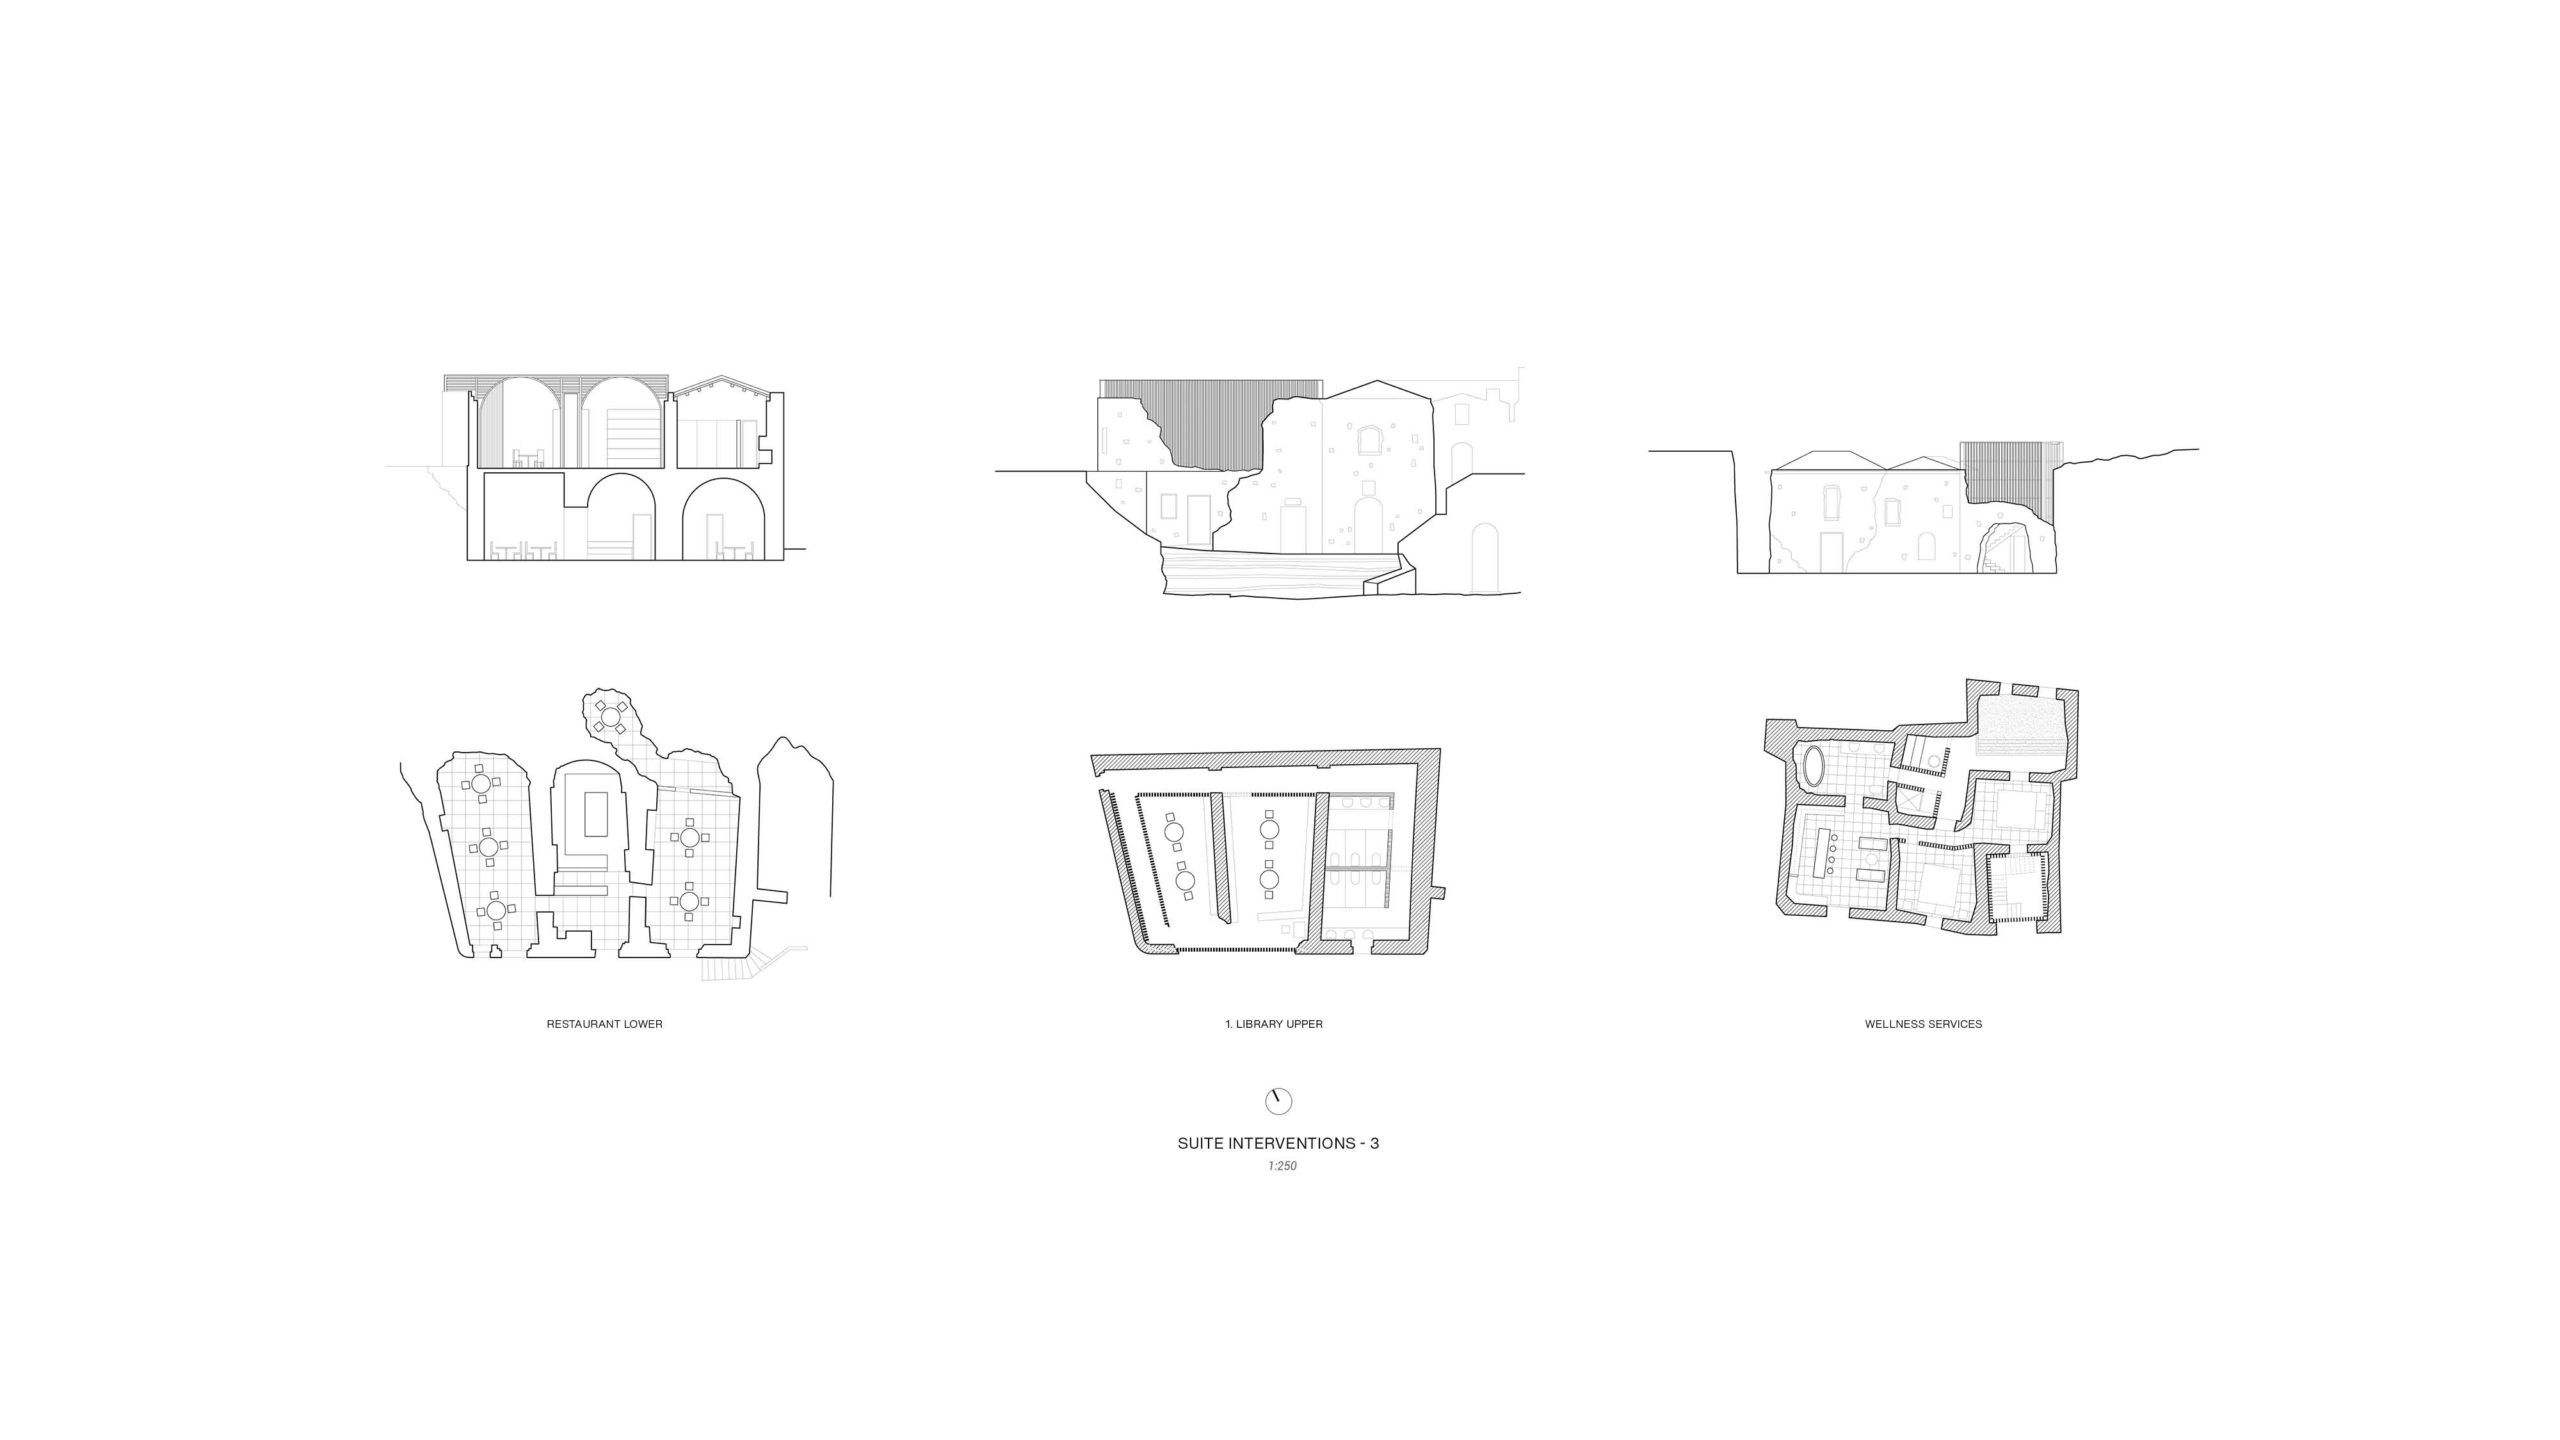 Unbuilt : TRACES - GHOST TOWN REFUGE, at Craco, Italy, by Claudio C. Araya, Yahya Abdullah 13